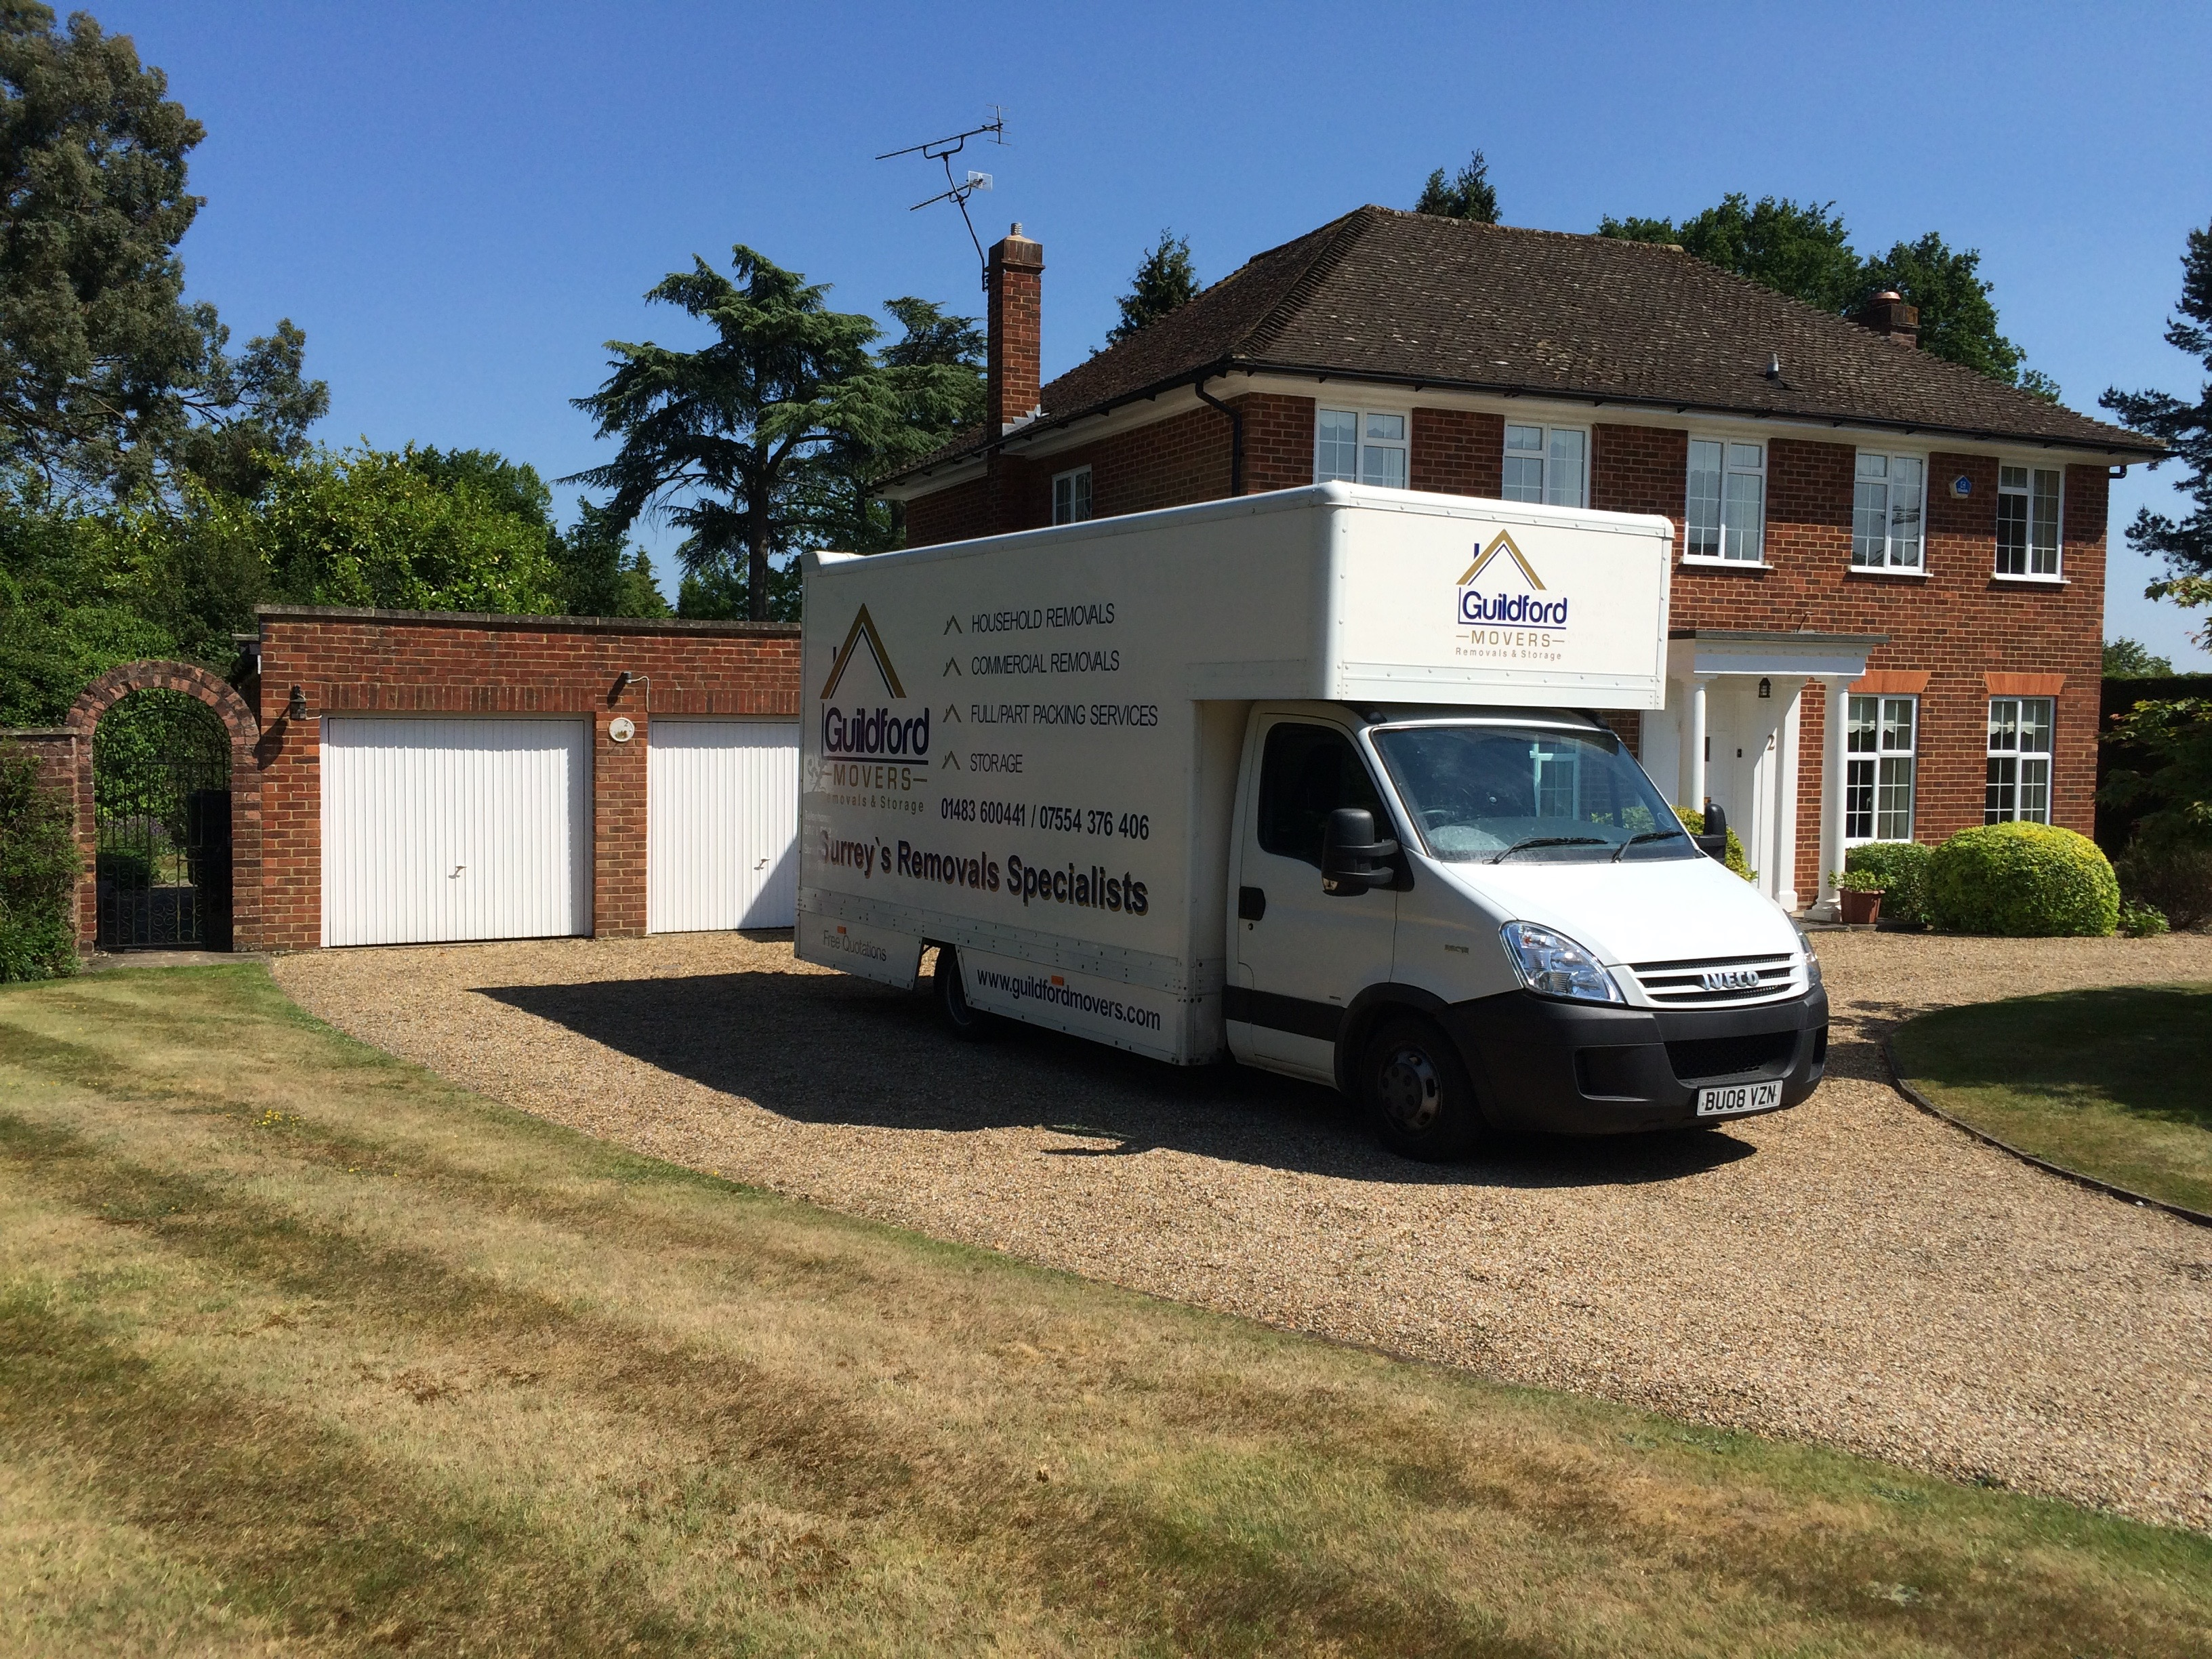 guildford movers van